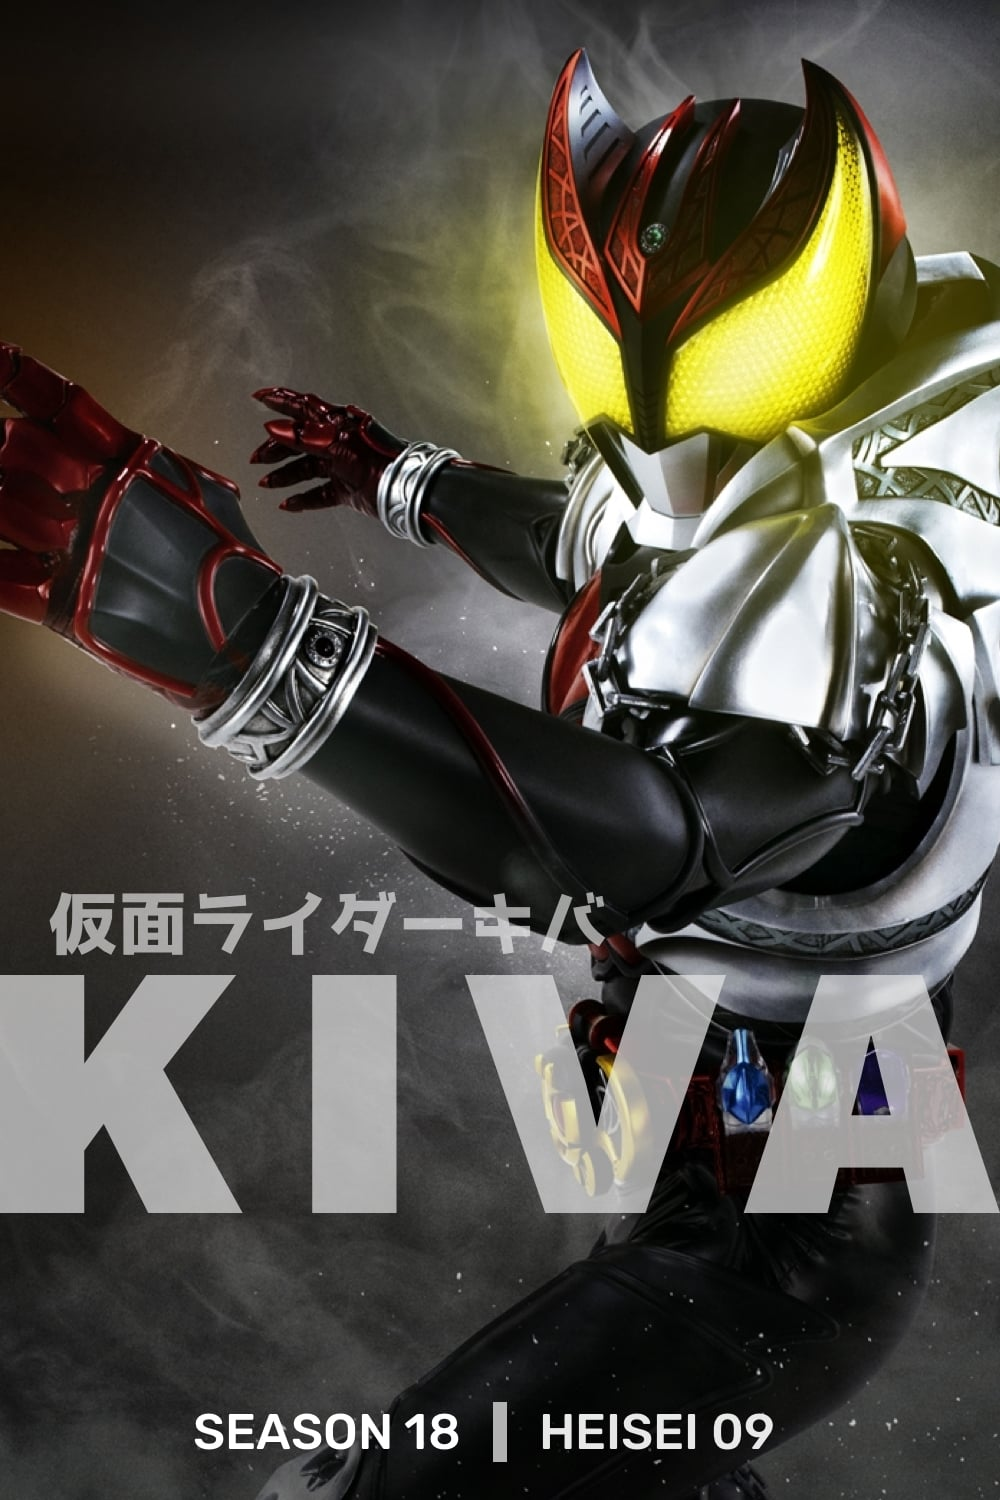 Kamen Rider - Season 21 Episode 30 : King, Panda, Memory of Flame Season 18